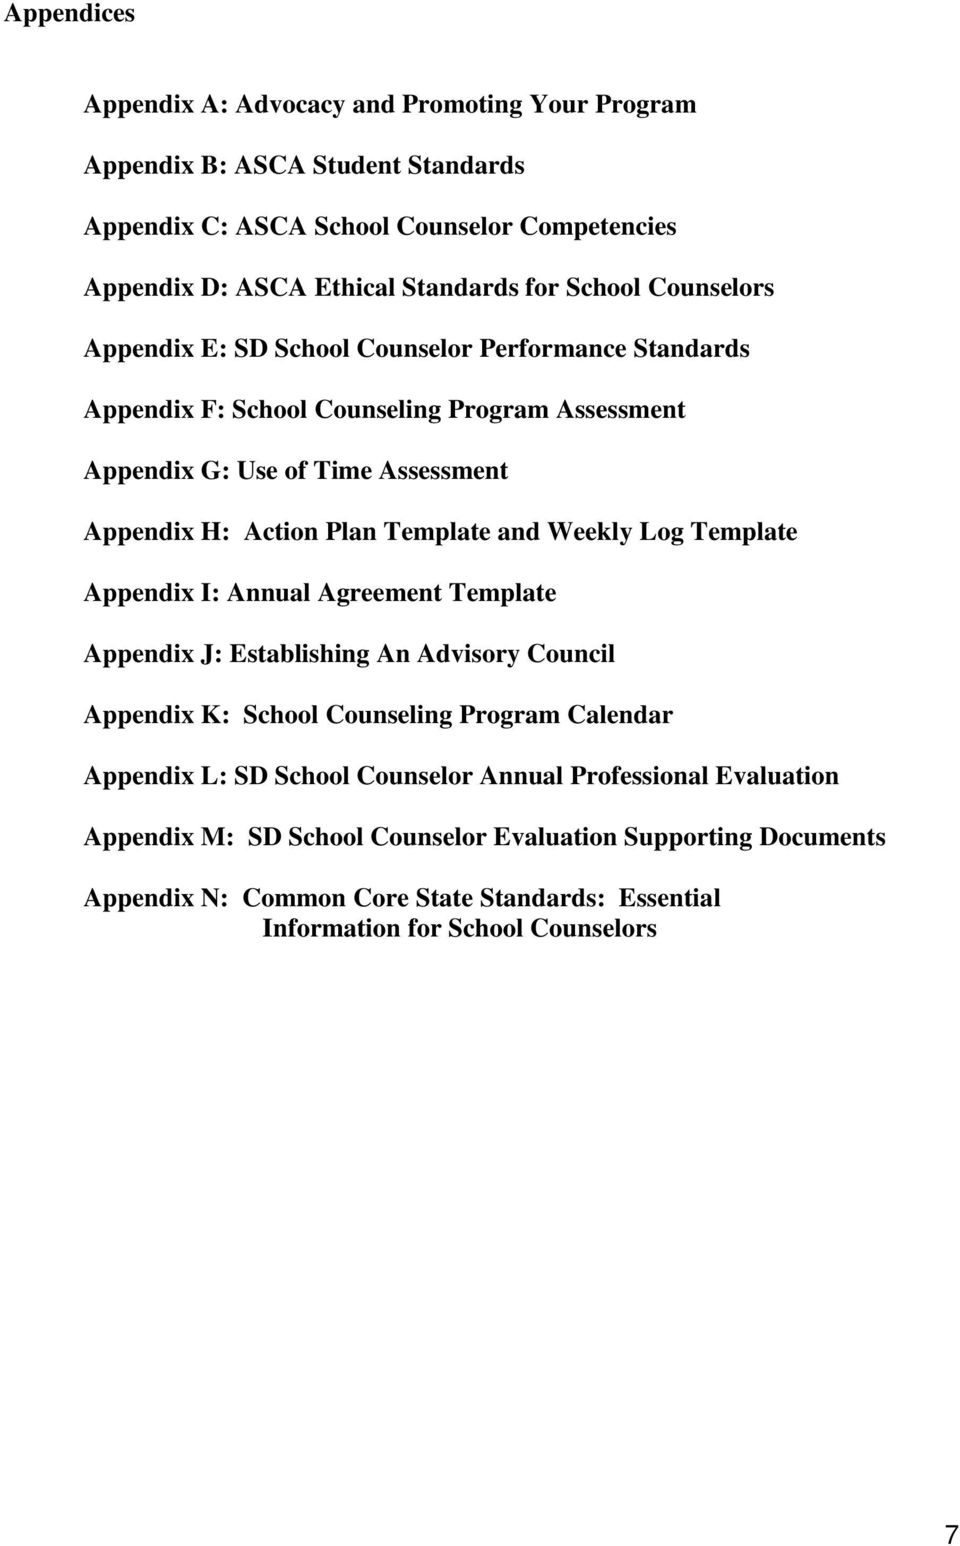 Template and Weekly Log Template Appendix I: Annual Agreement Template Appendix J: Establishing An Advisory Council Appendix K: School Counseling Program Calendar Appendix L: SD